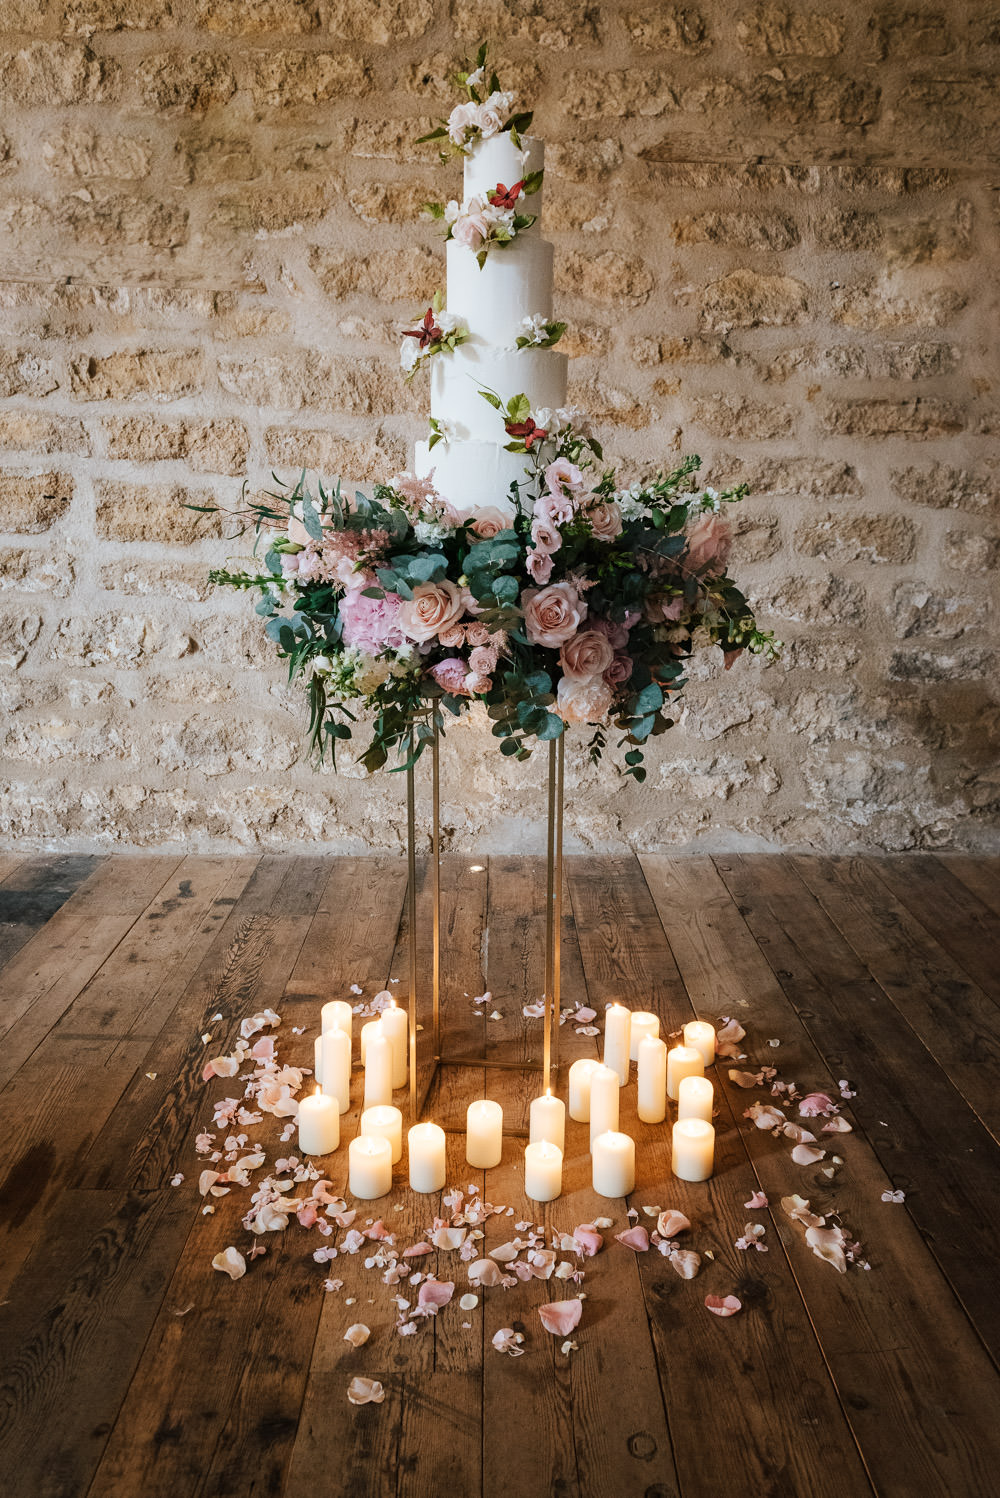 Floral Cake Pretty Pink Flowers Candles Petals Cherry Blossom Wedding Ideas Sugarbird Photography